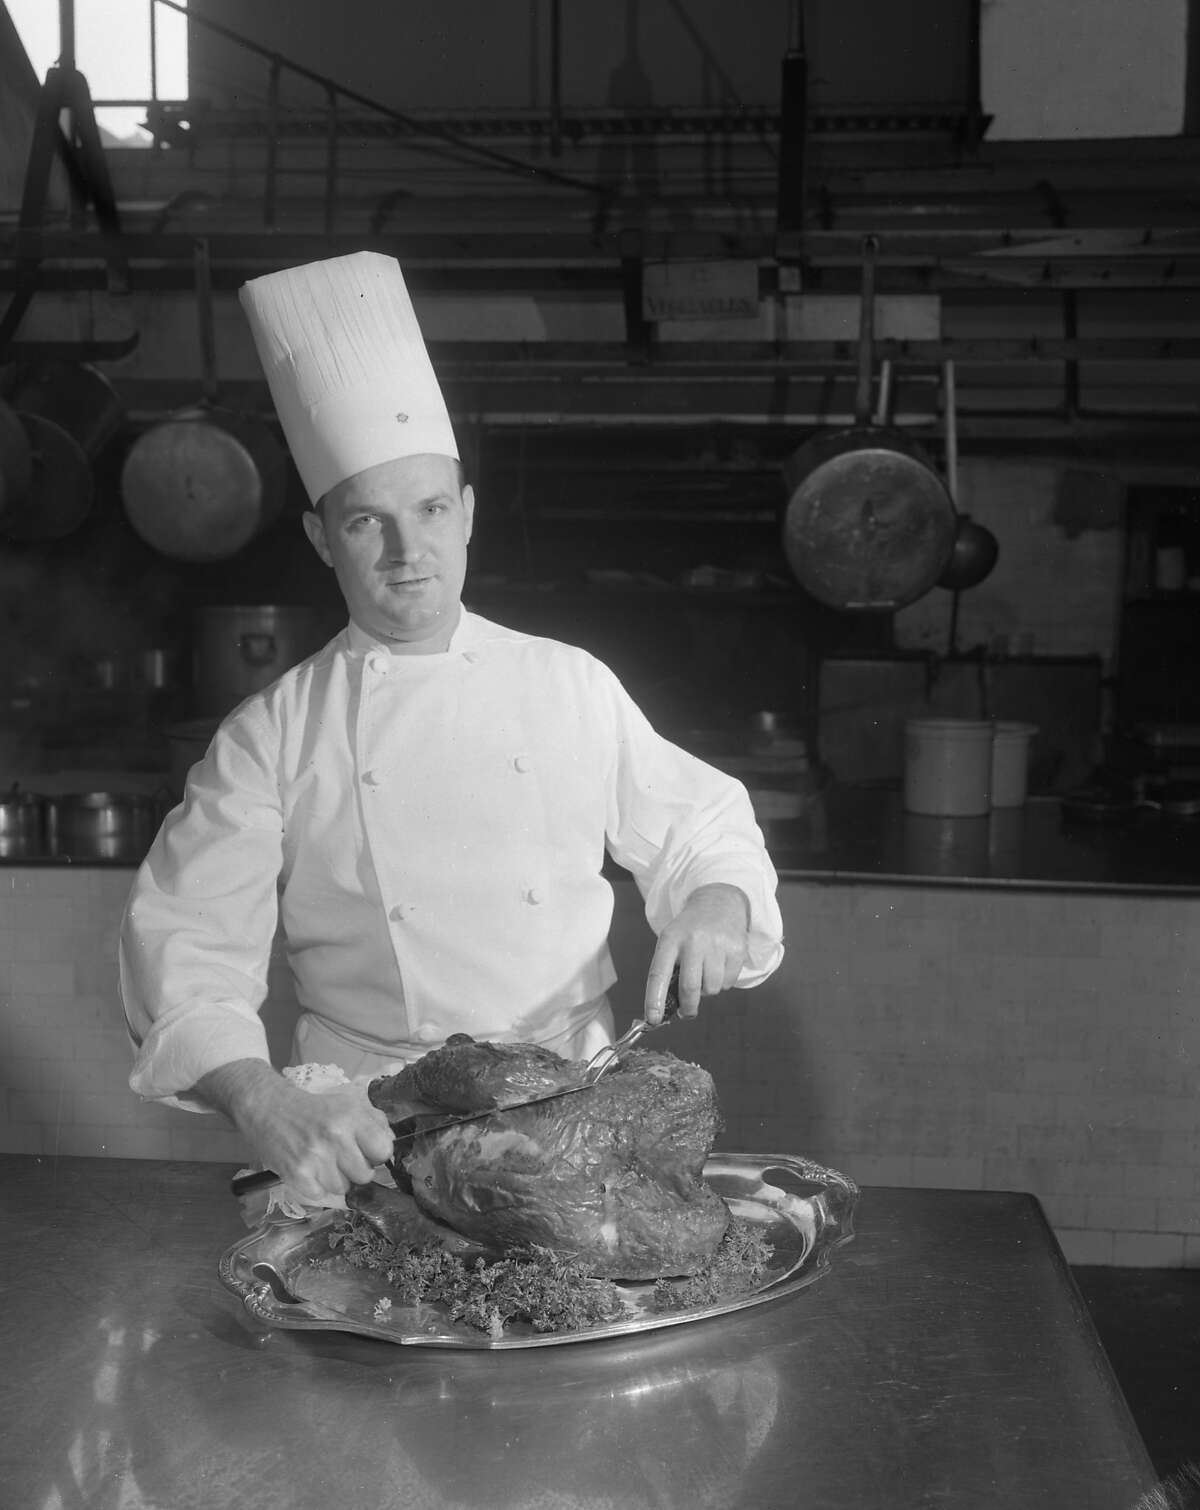 In 1956, San Francisco Chronicle columnist Art Hoppe visited Harry Dailey, the chef of San Francisco's Palace Hotel, for a hands-on turkey carving demonstration. Photographer Art Frisch tagged along to take a series of beautiful photos of the